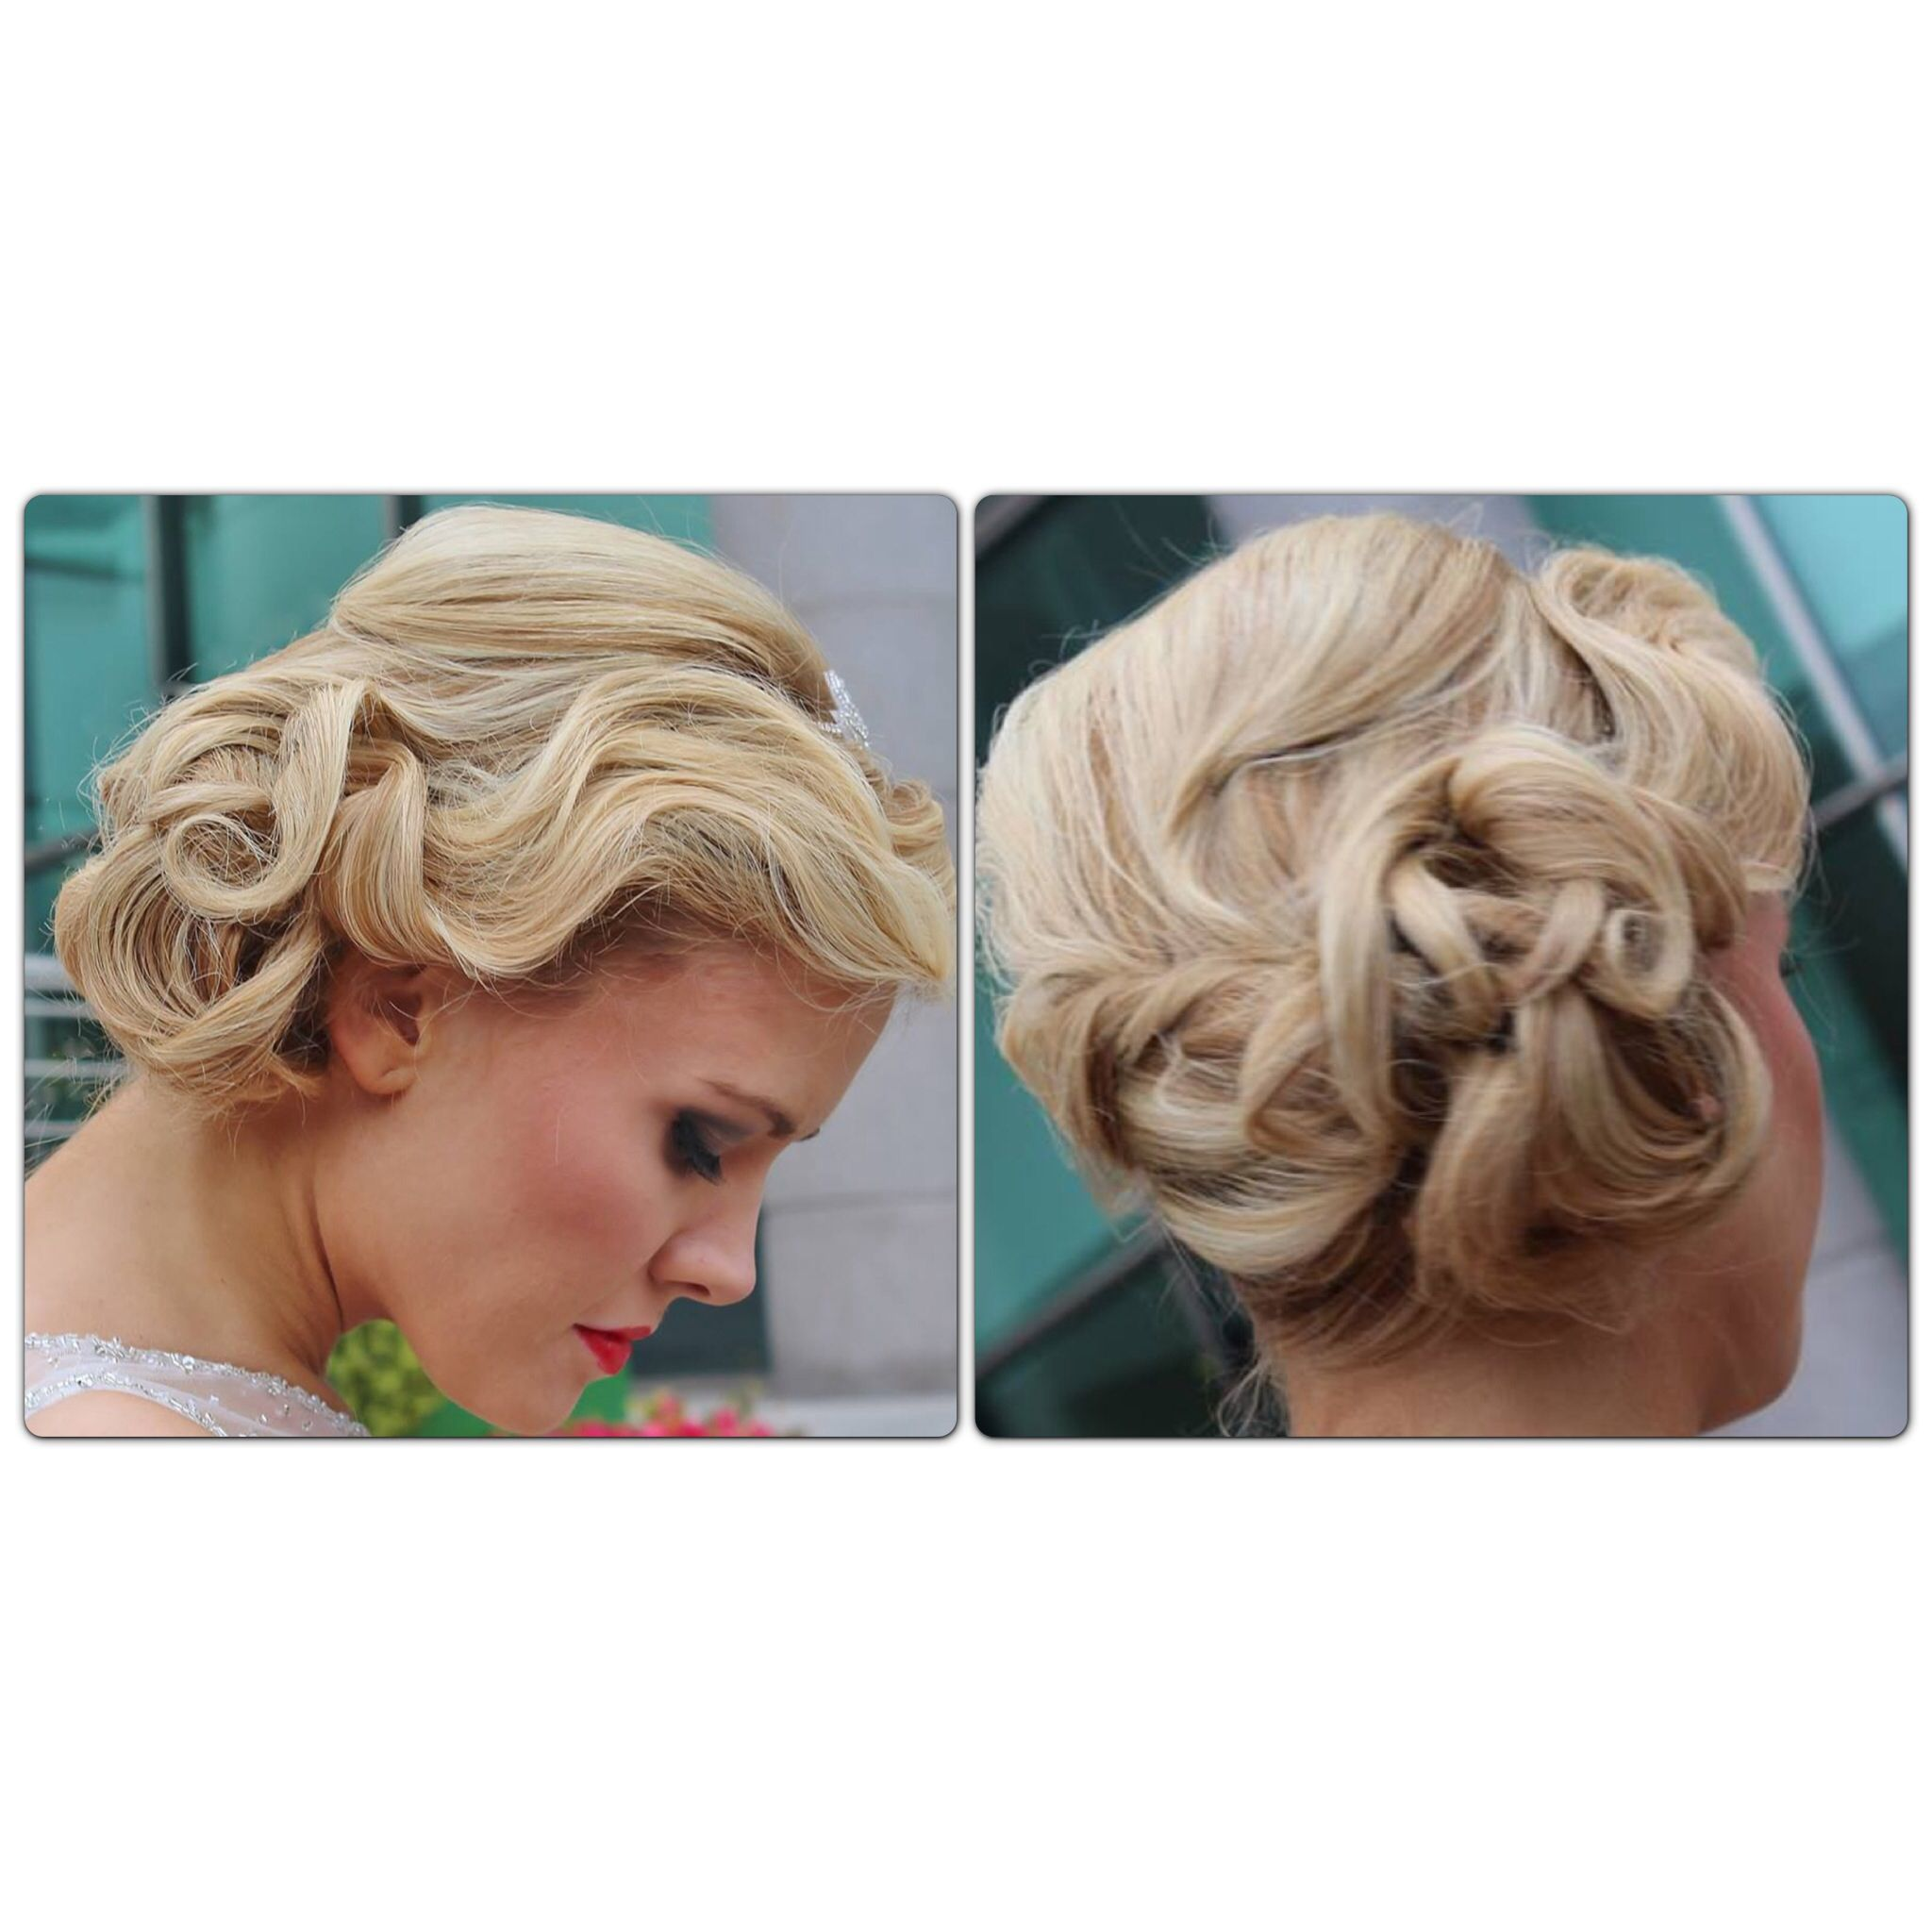 Wedding Hairstyle Prices: Vintage Wedding Hair Updo Lox Side Style Blonde Finger